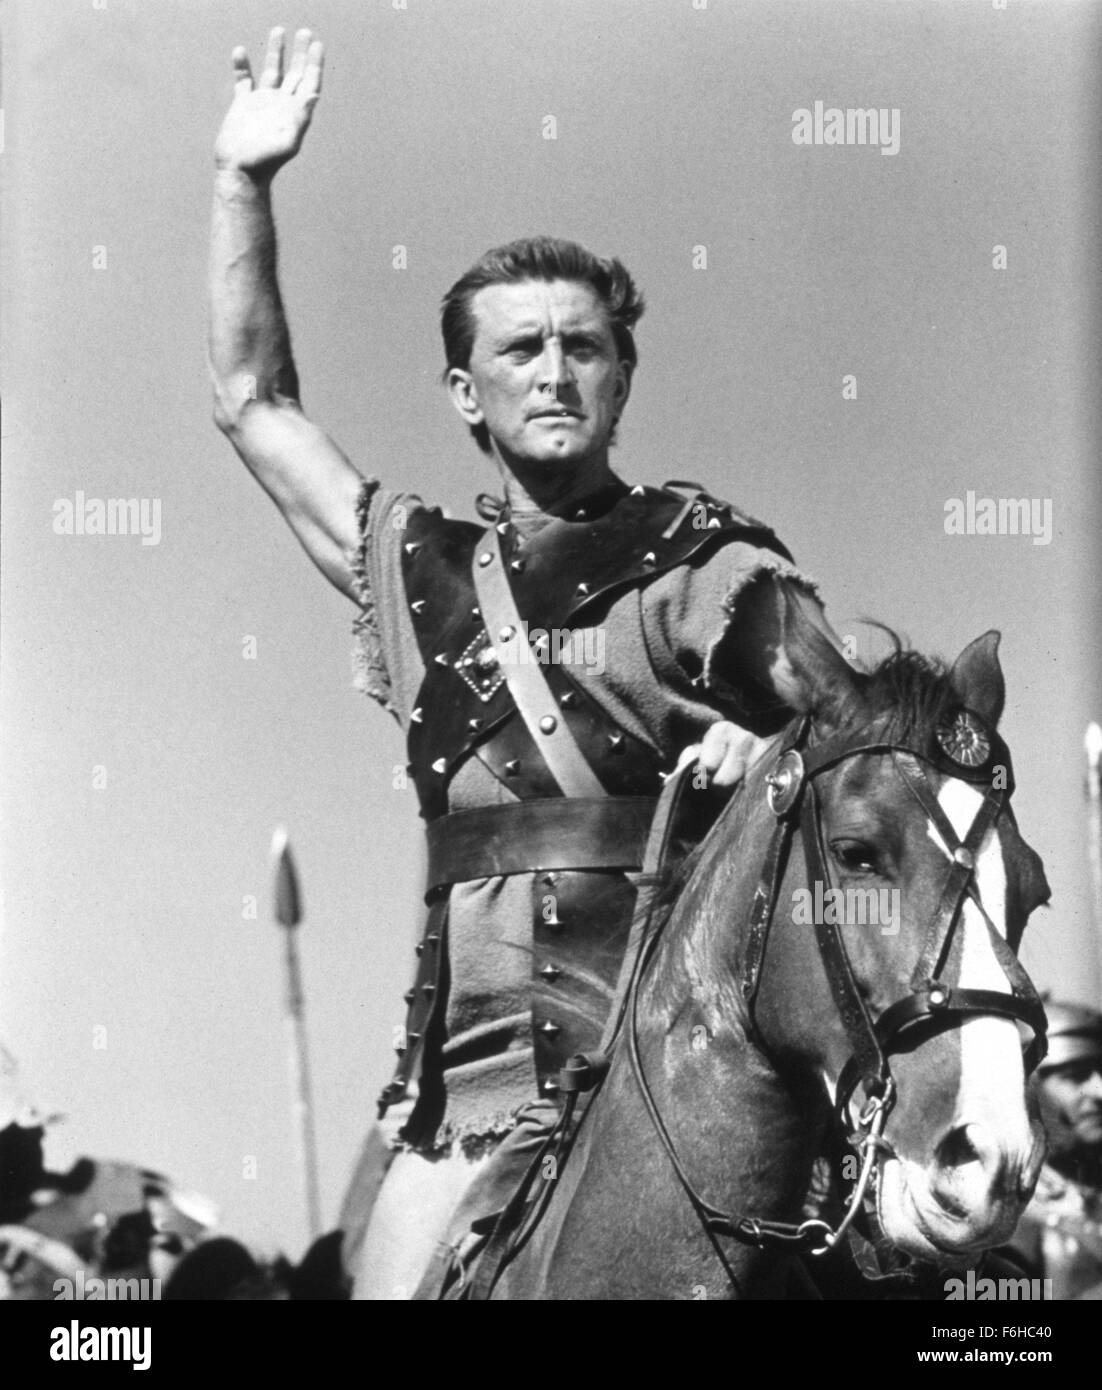 a review of spartacus a film by stanley kubrick Spartacus: damn, i can't believe i never saw this film before another masterpiece by stanley kubrick: for the moral message, the cinematography, love, and epicness: so to start off, i want to share some philosophical takeaways i got from this film: spartacus philosophy 1.